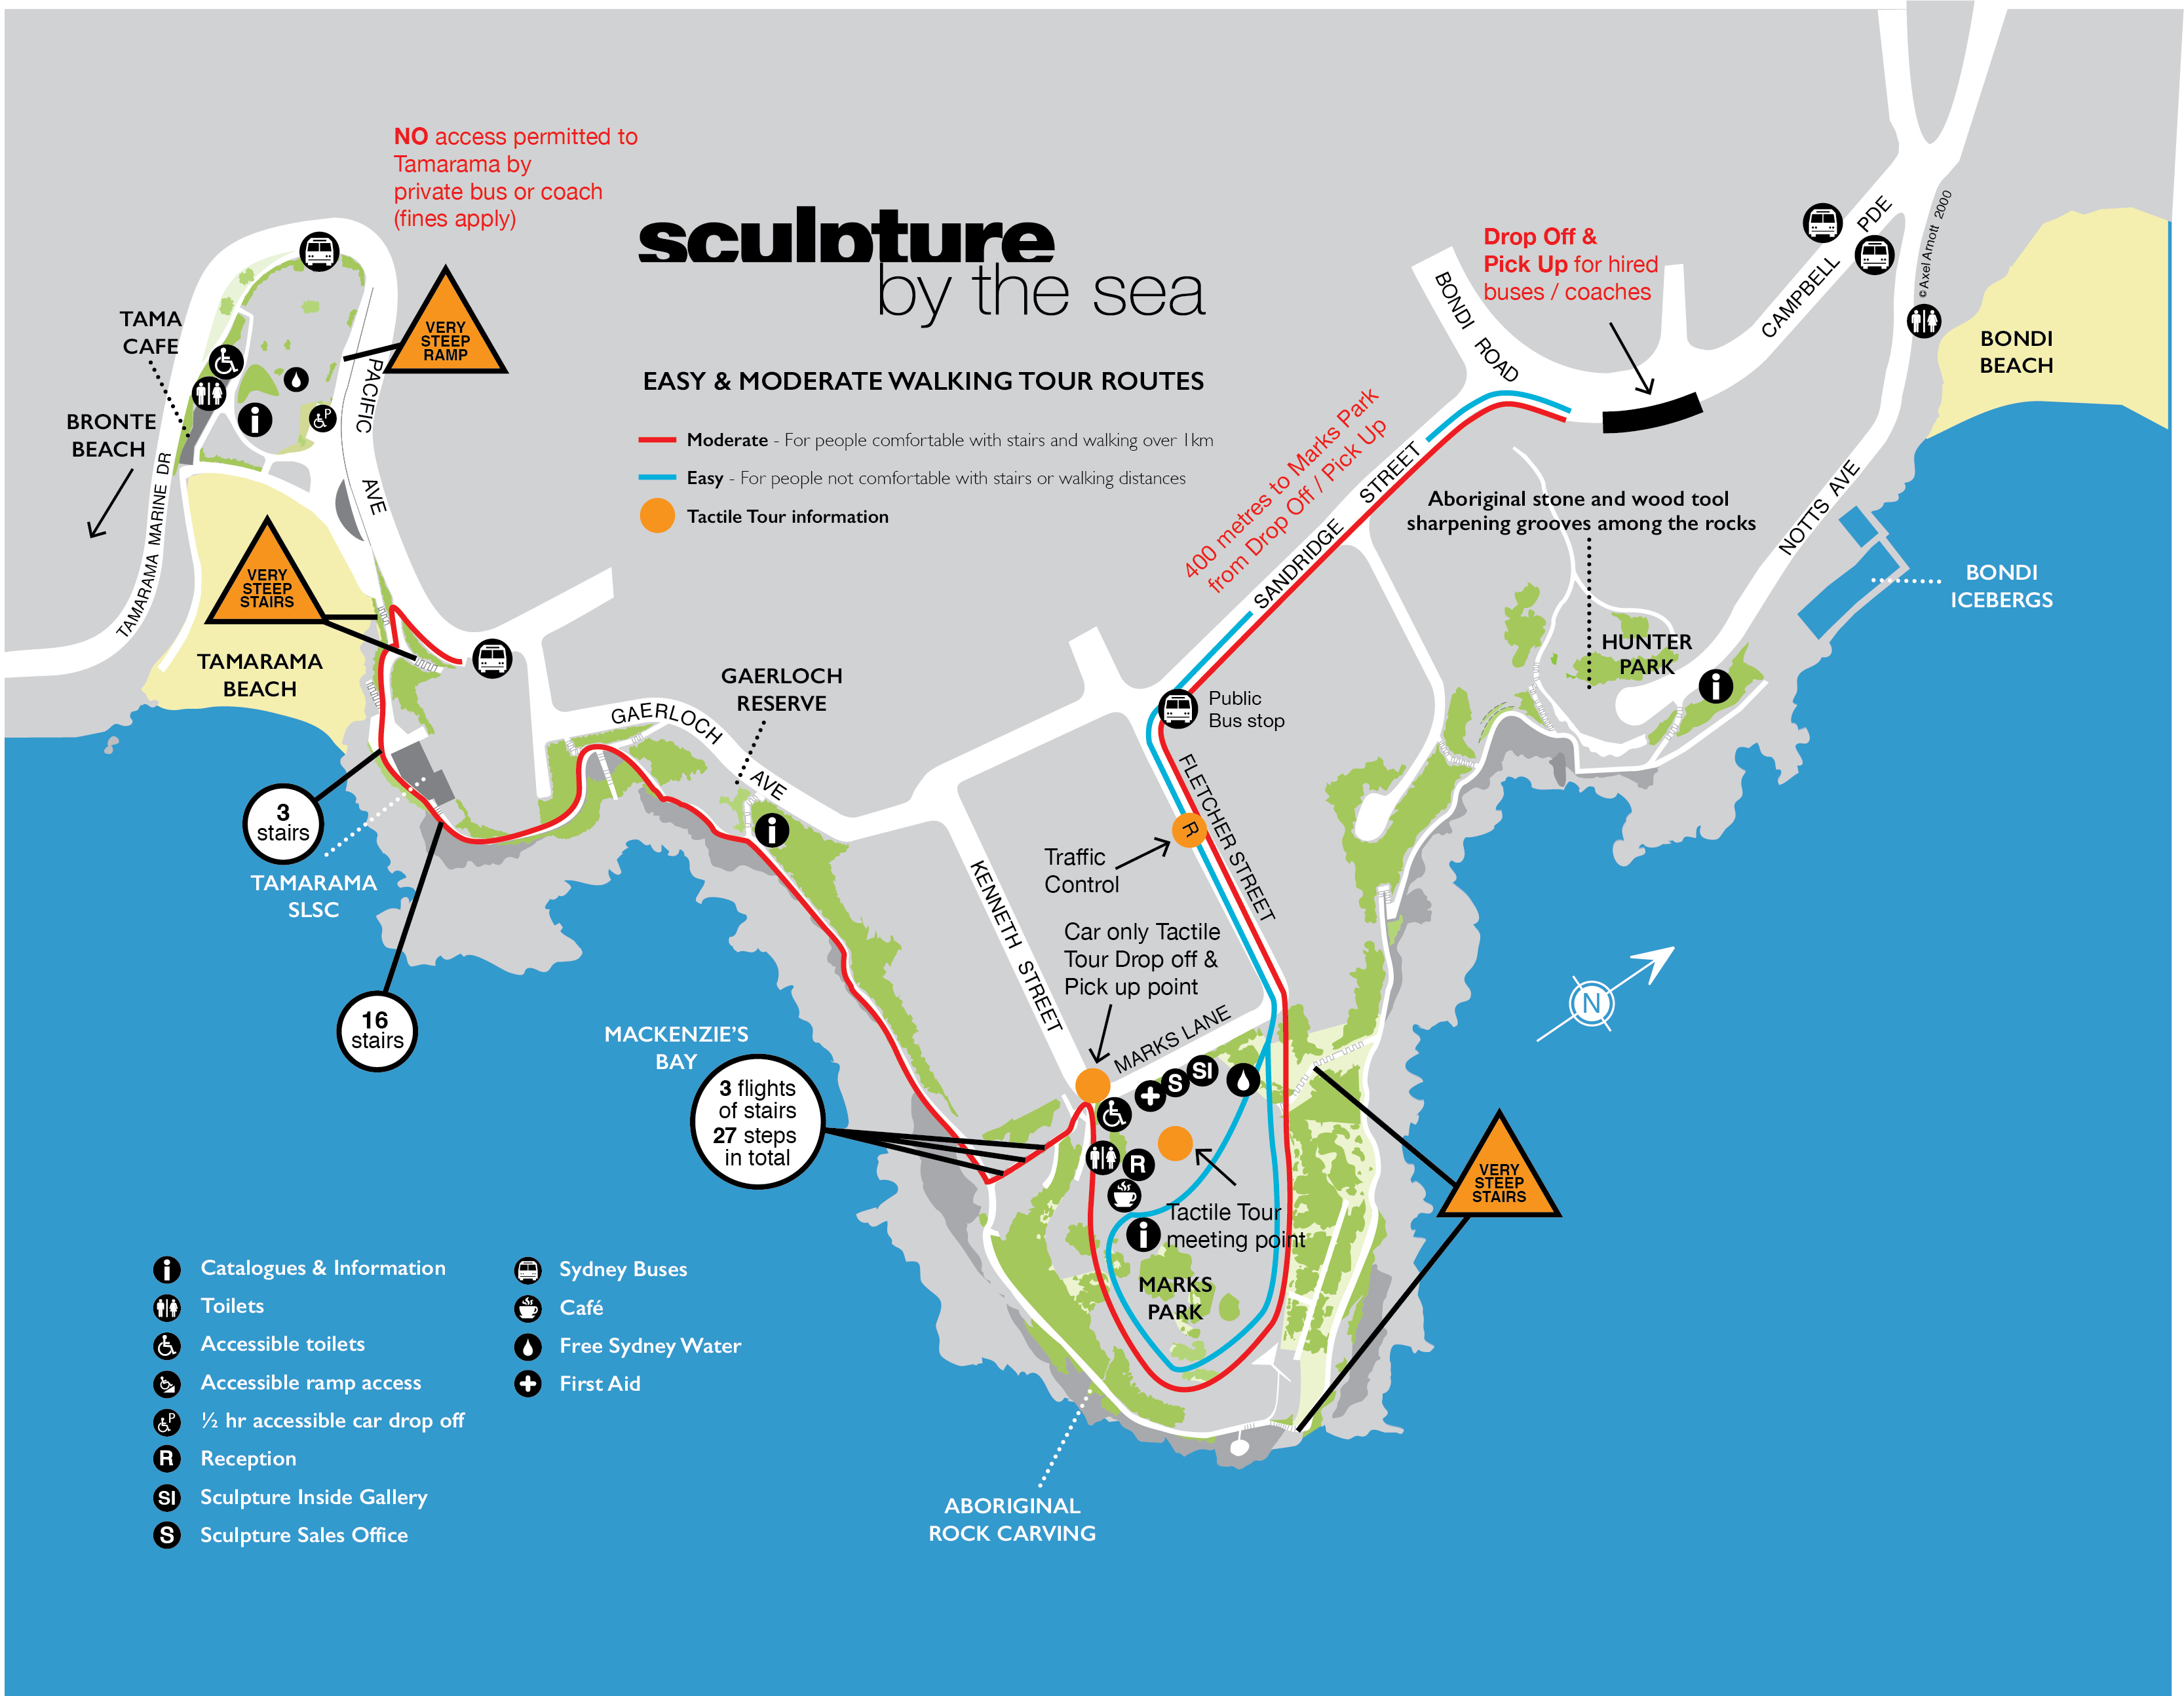 Walking Tour Map of The Sculpture by the Sea Bondi